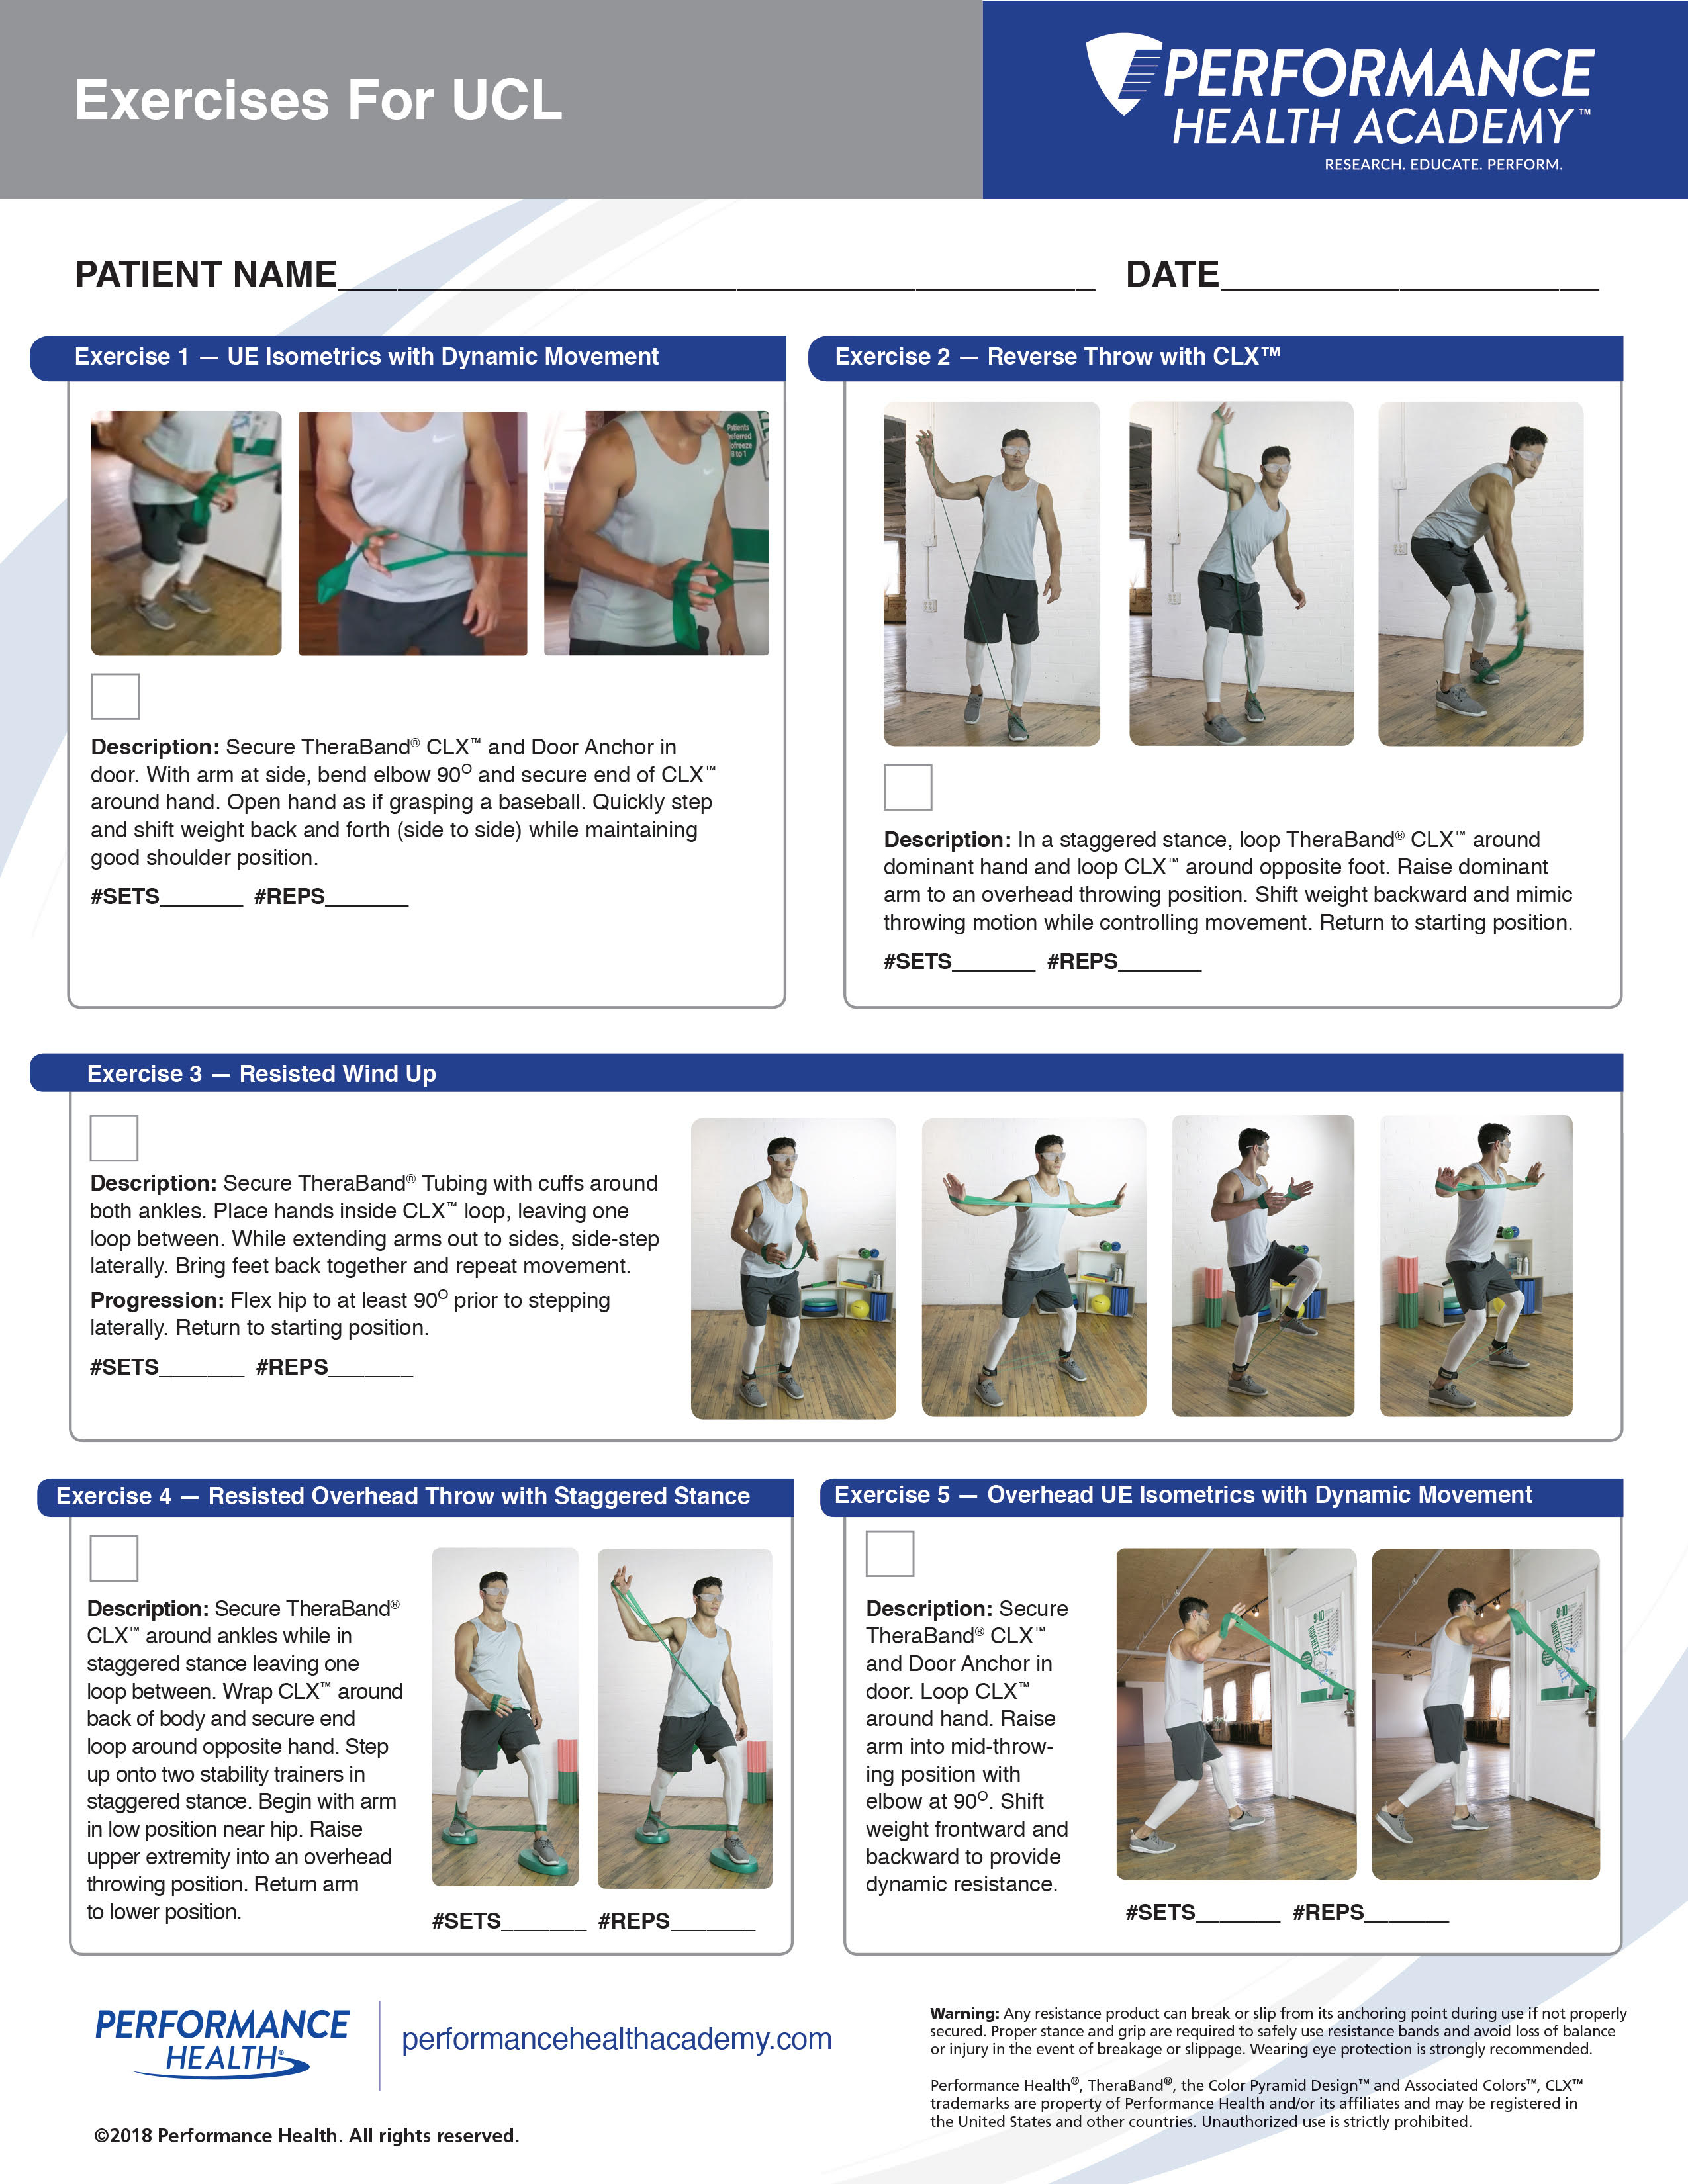 Exercises for UCL